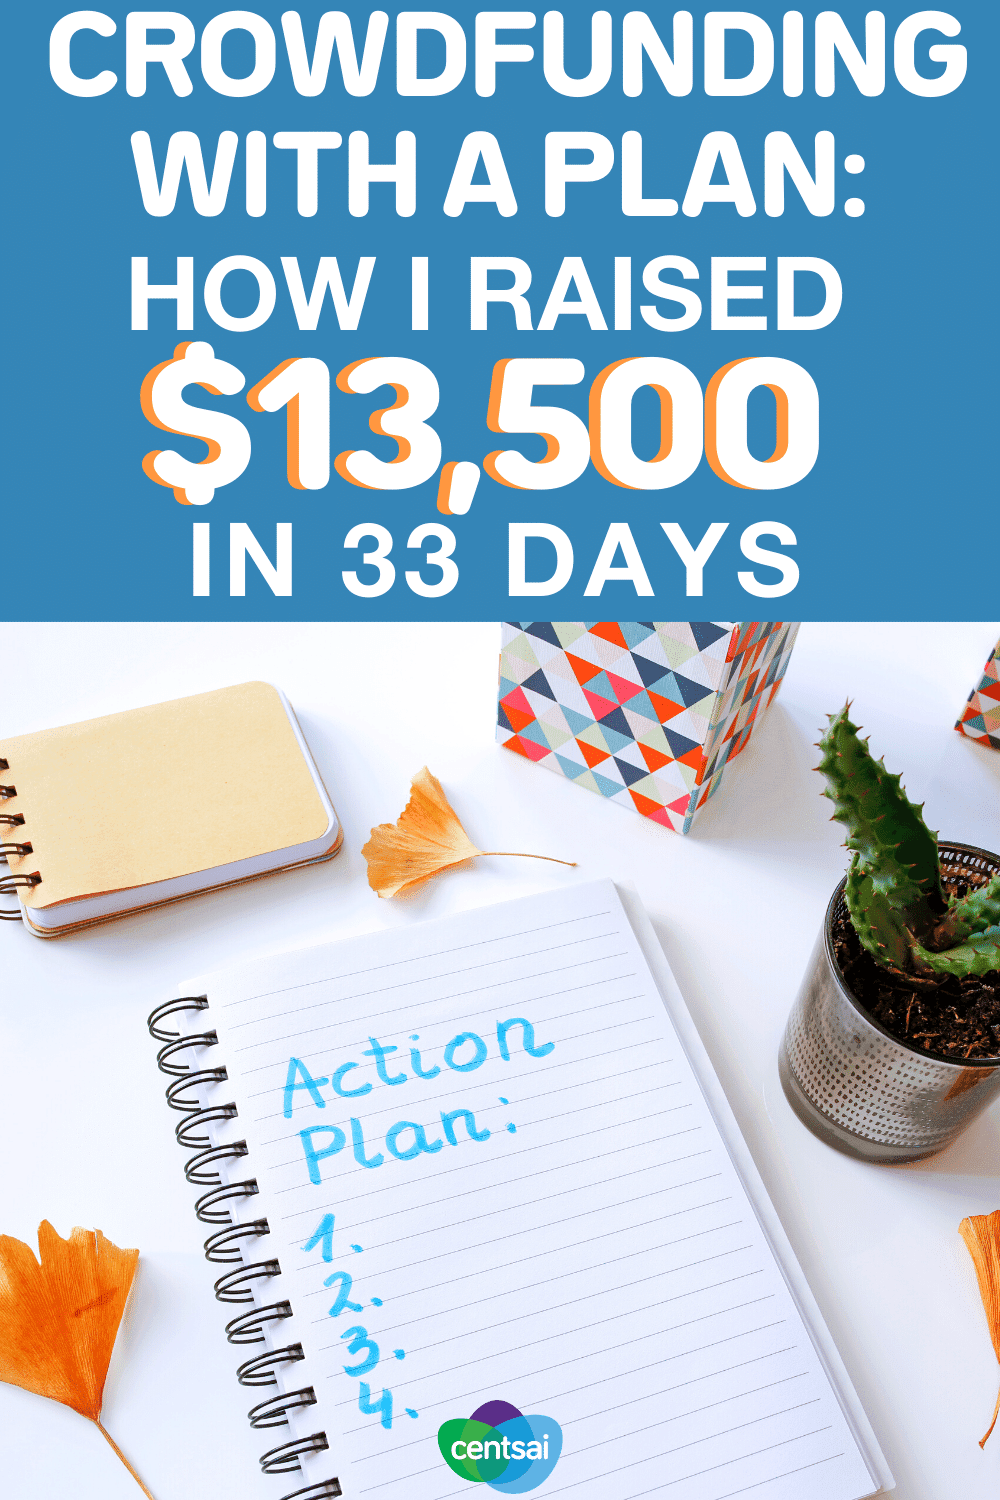 Crowdfunding With a Plan_ How I Raised $13,500 in 33 Days